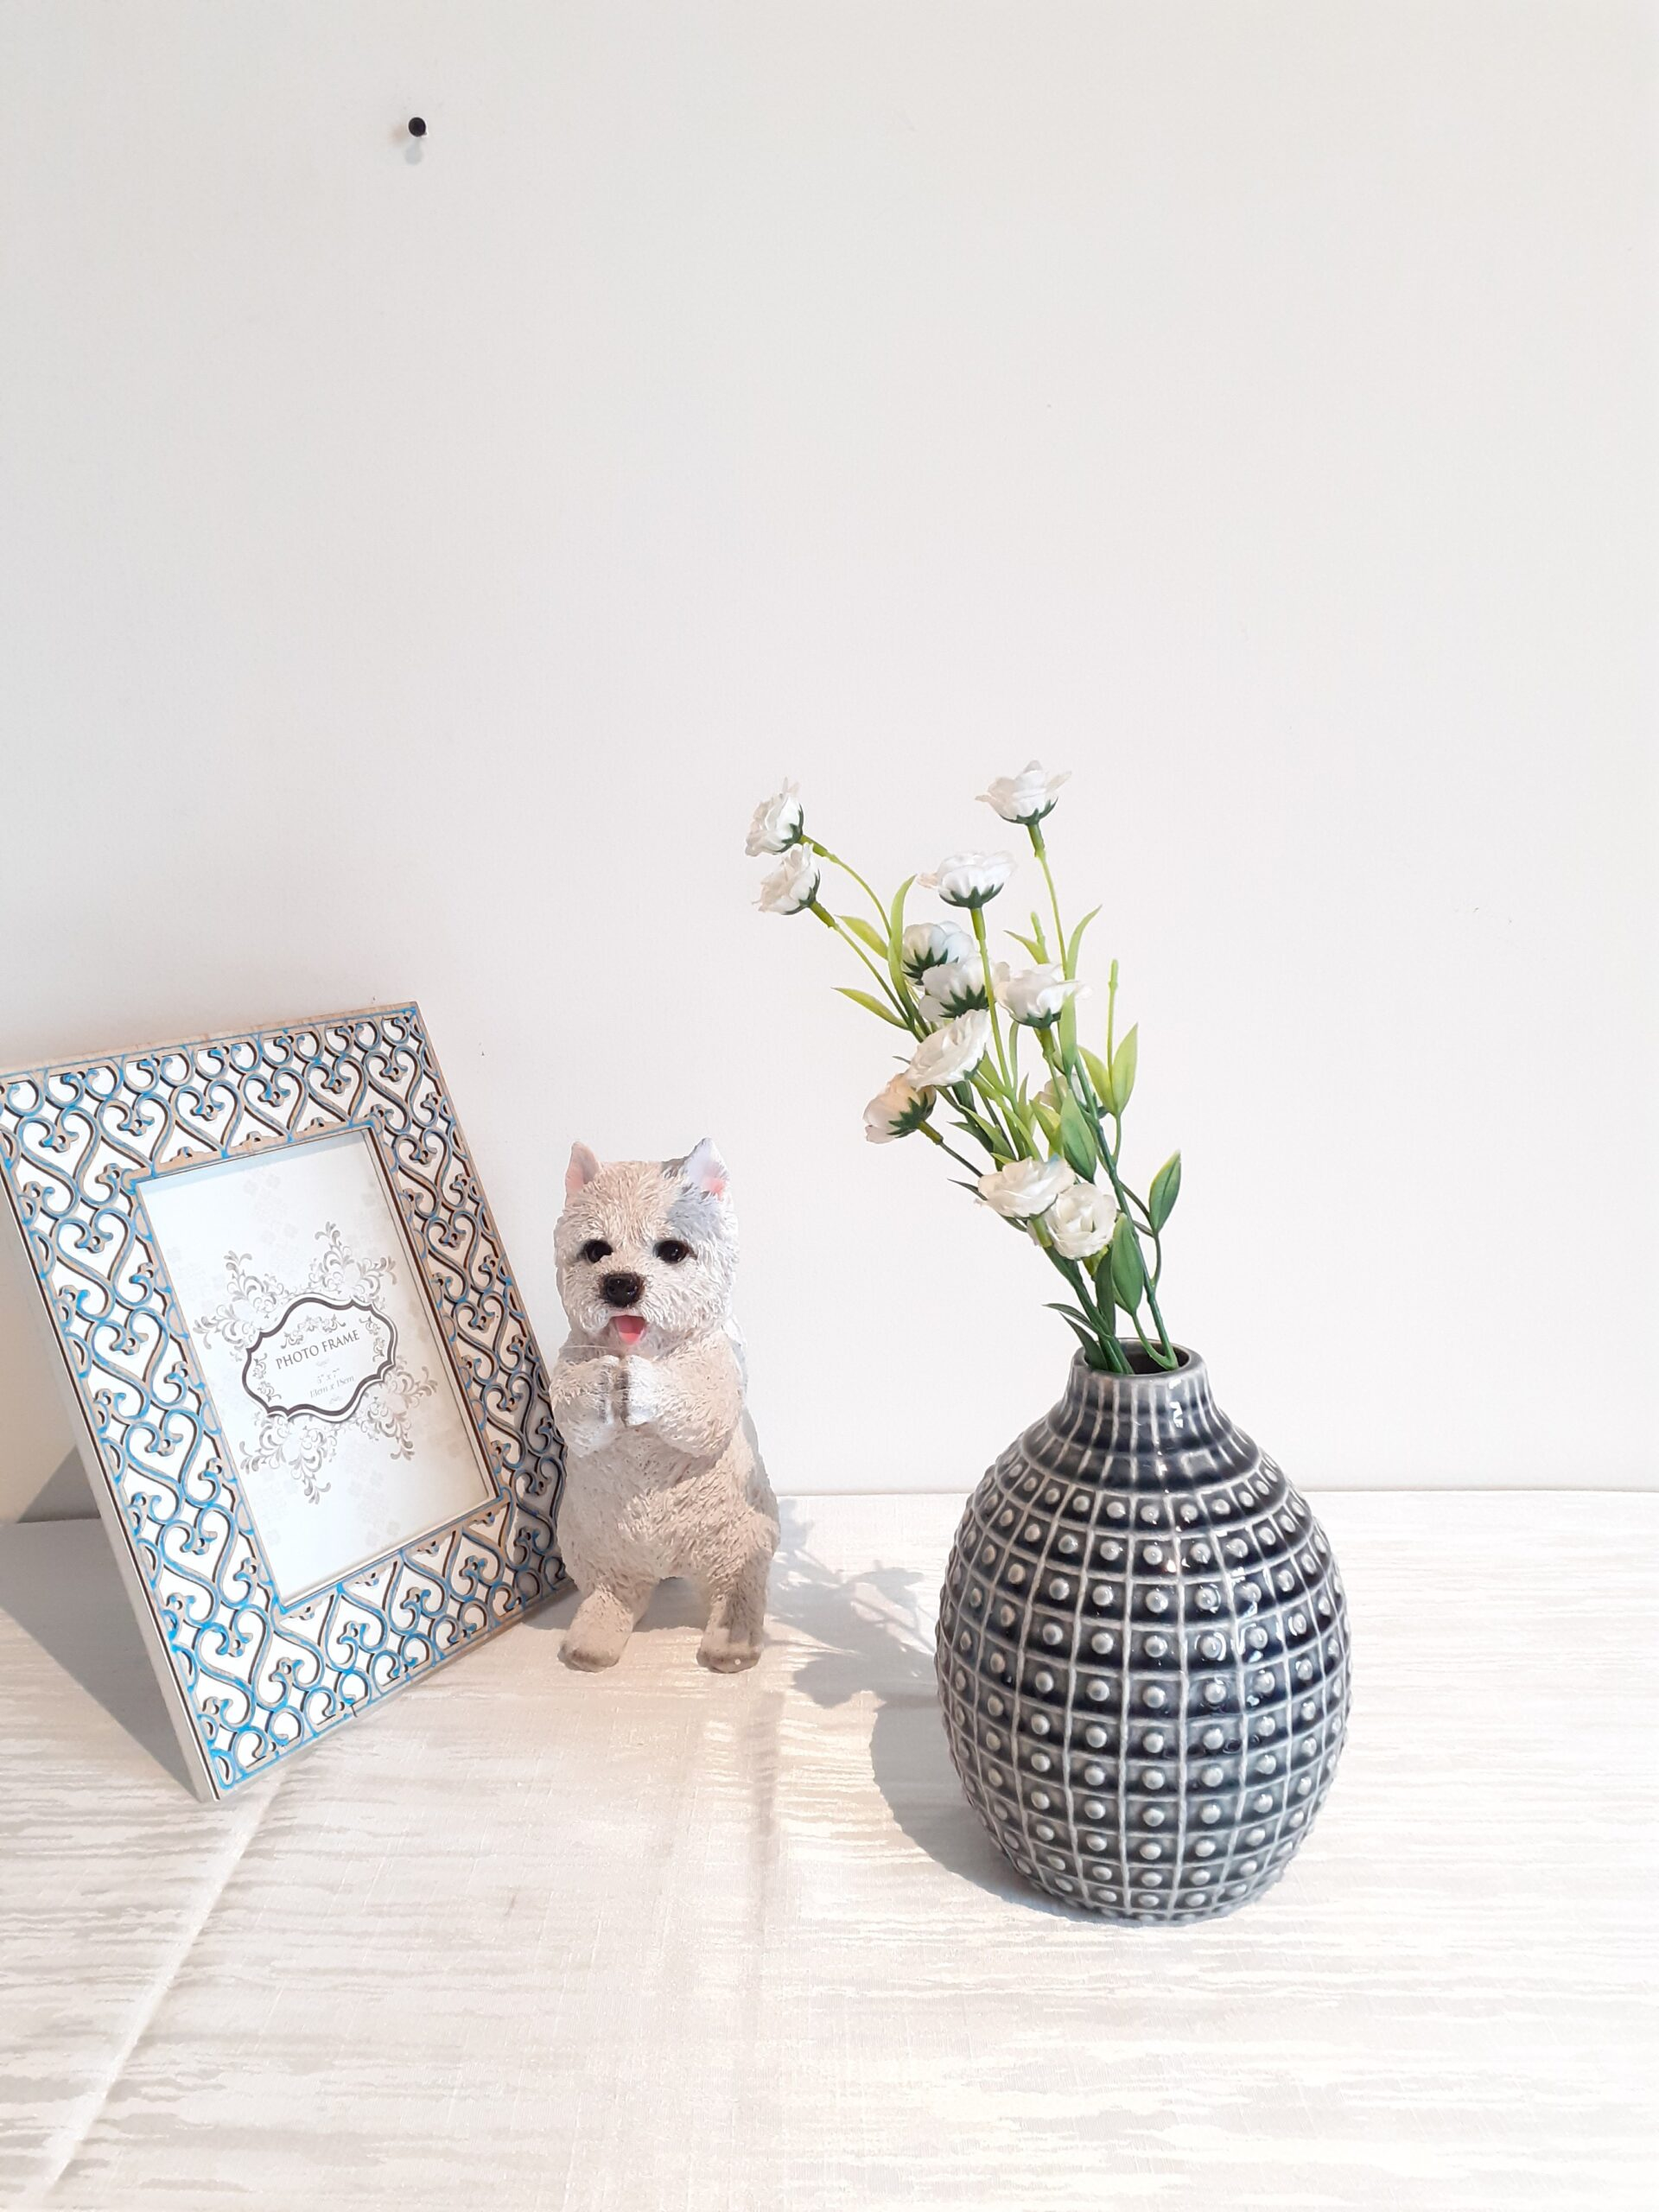 Decor and Gifts